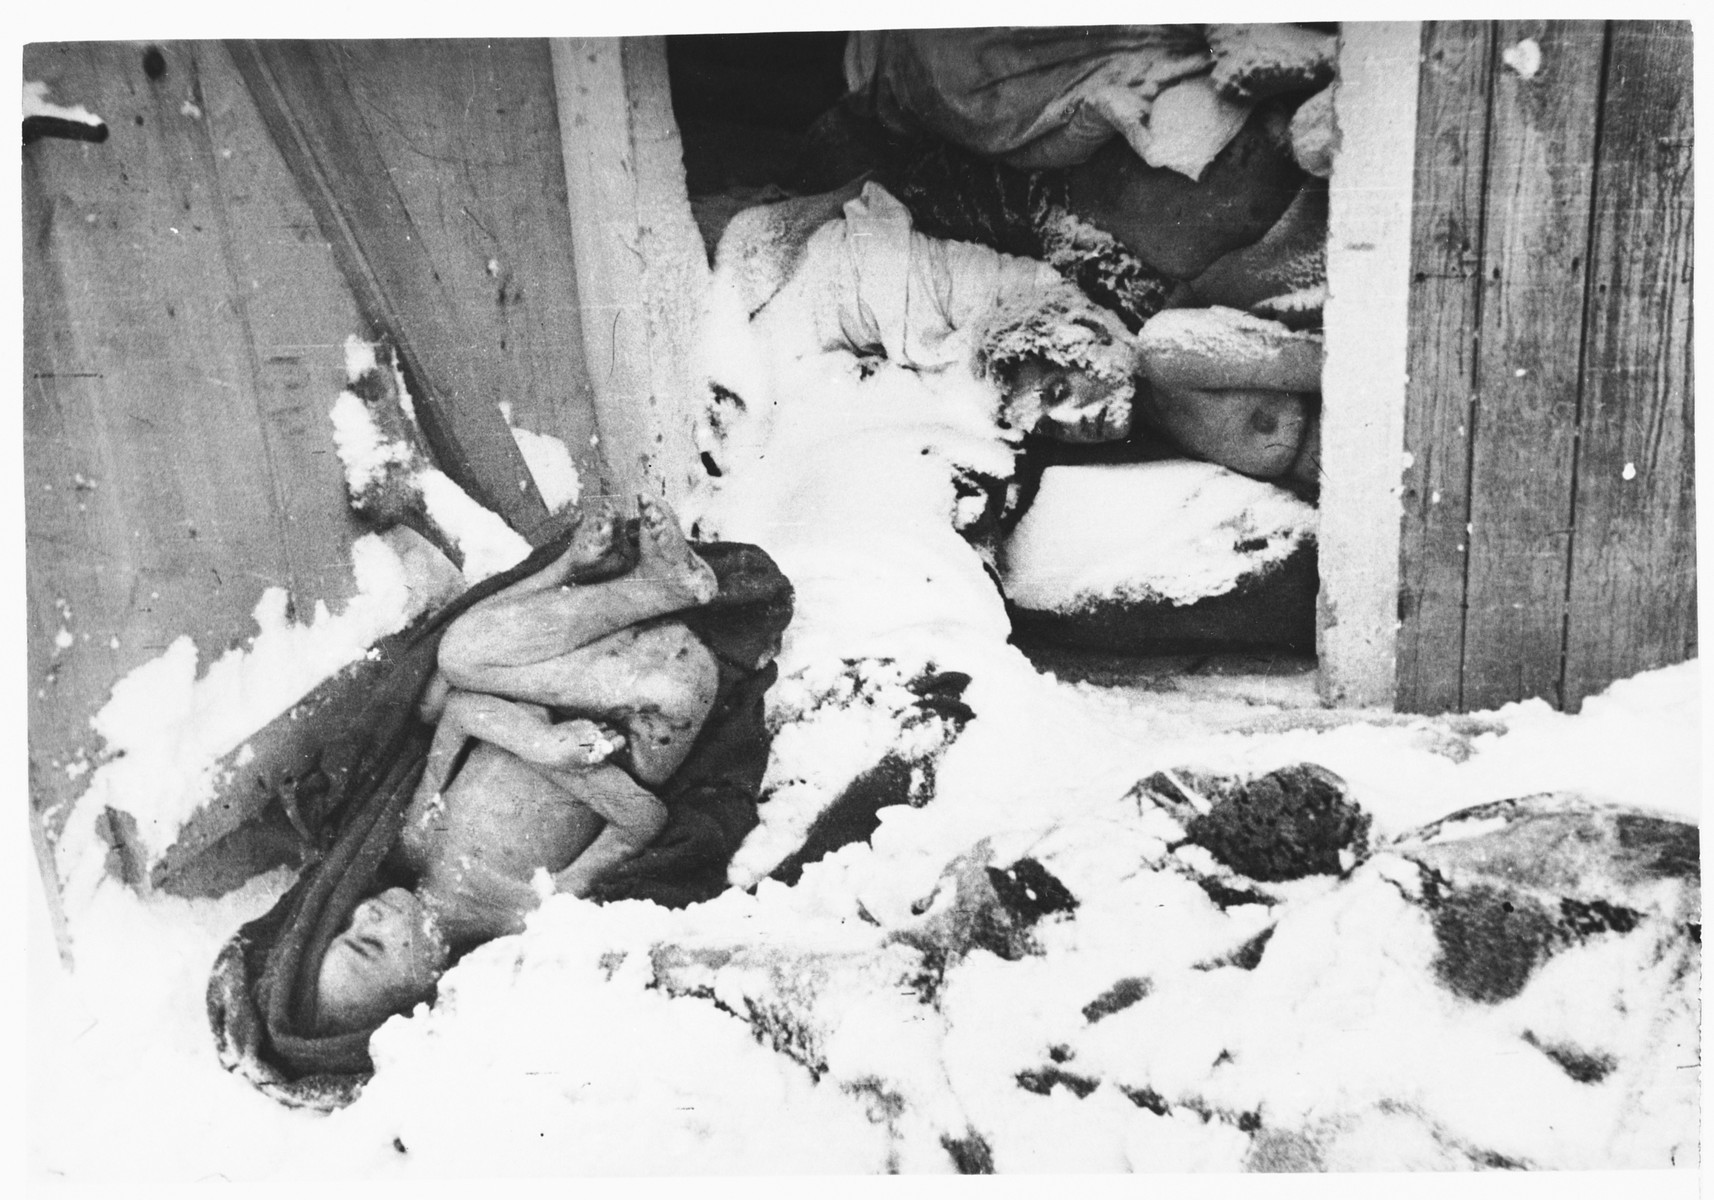 """The corpses of prisoners killed just prior to the evacuation of Auschwitz-Birkenau tumble out of a shed into the snow when it is opened after the liberation.  Original caption:  """"A store of """"human fuel"""", handily by the ovens.  The shed was full of bodies piled up to the ceiling.  When the doors were opened, some cadavers tumbled out."""""""